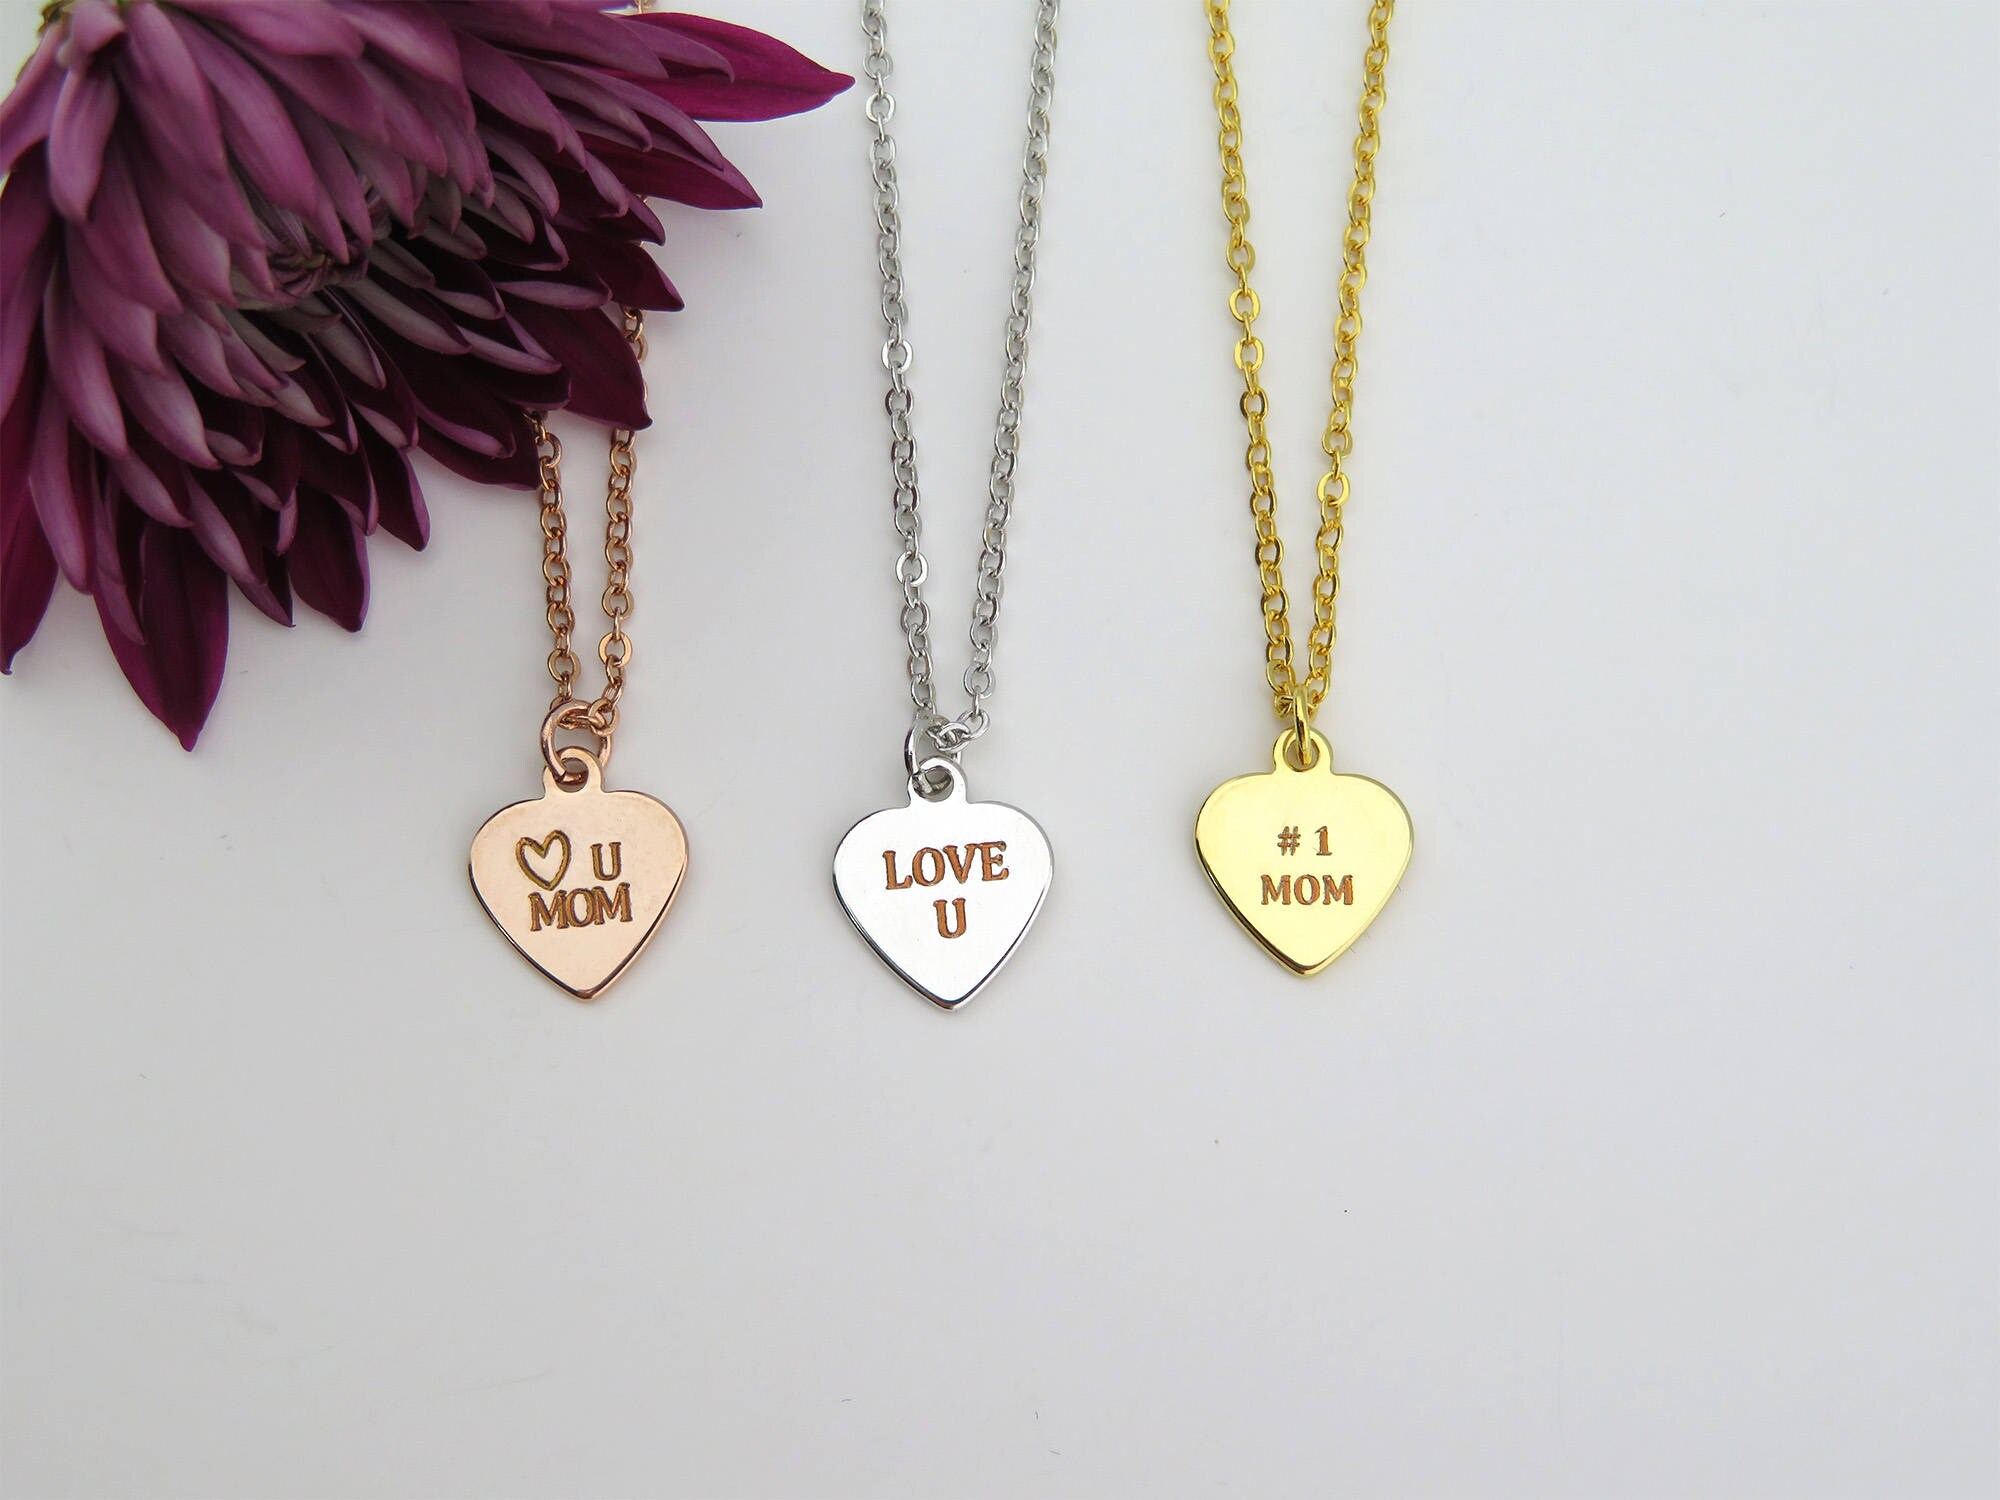 Mothers Day gift Heart Necklace Mom from Daughter Engraved Necklace